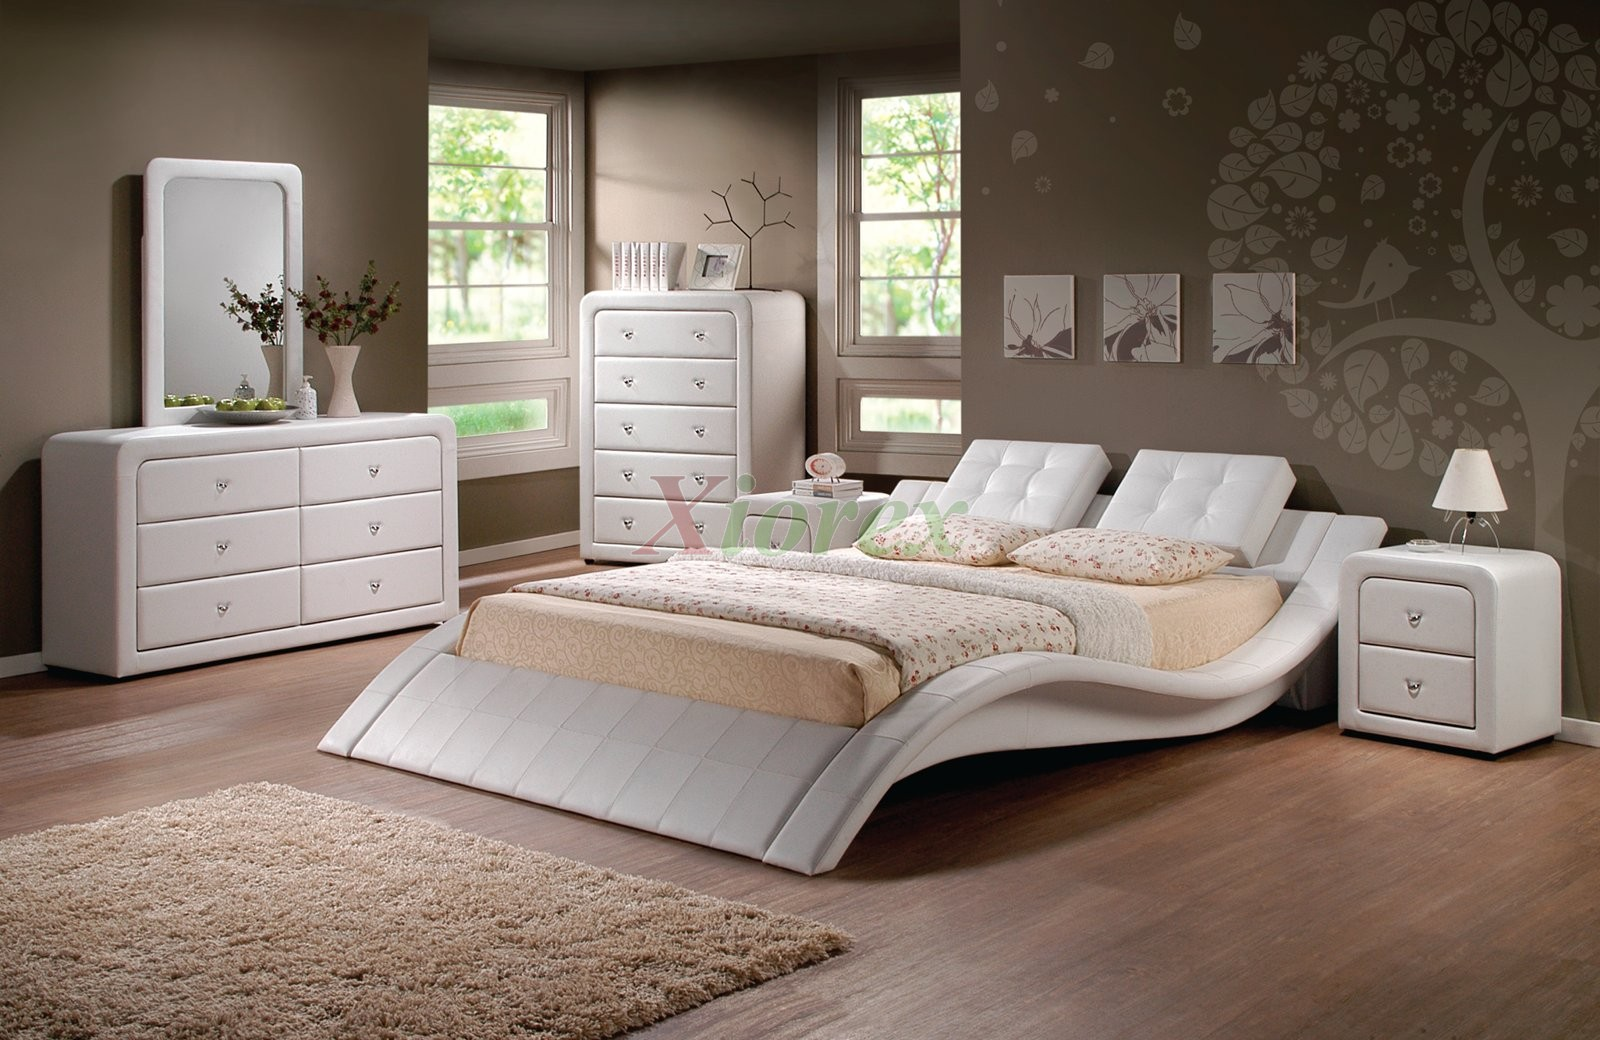 Bed And Furniture Sets bedroom design quotes House Designer